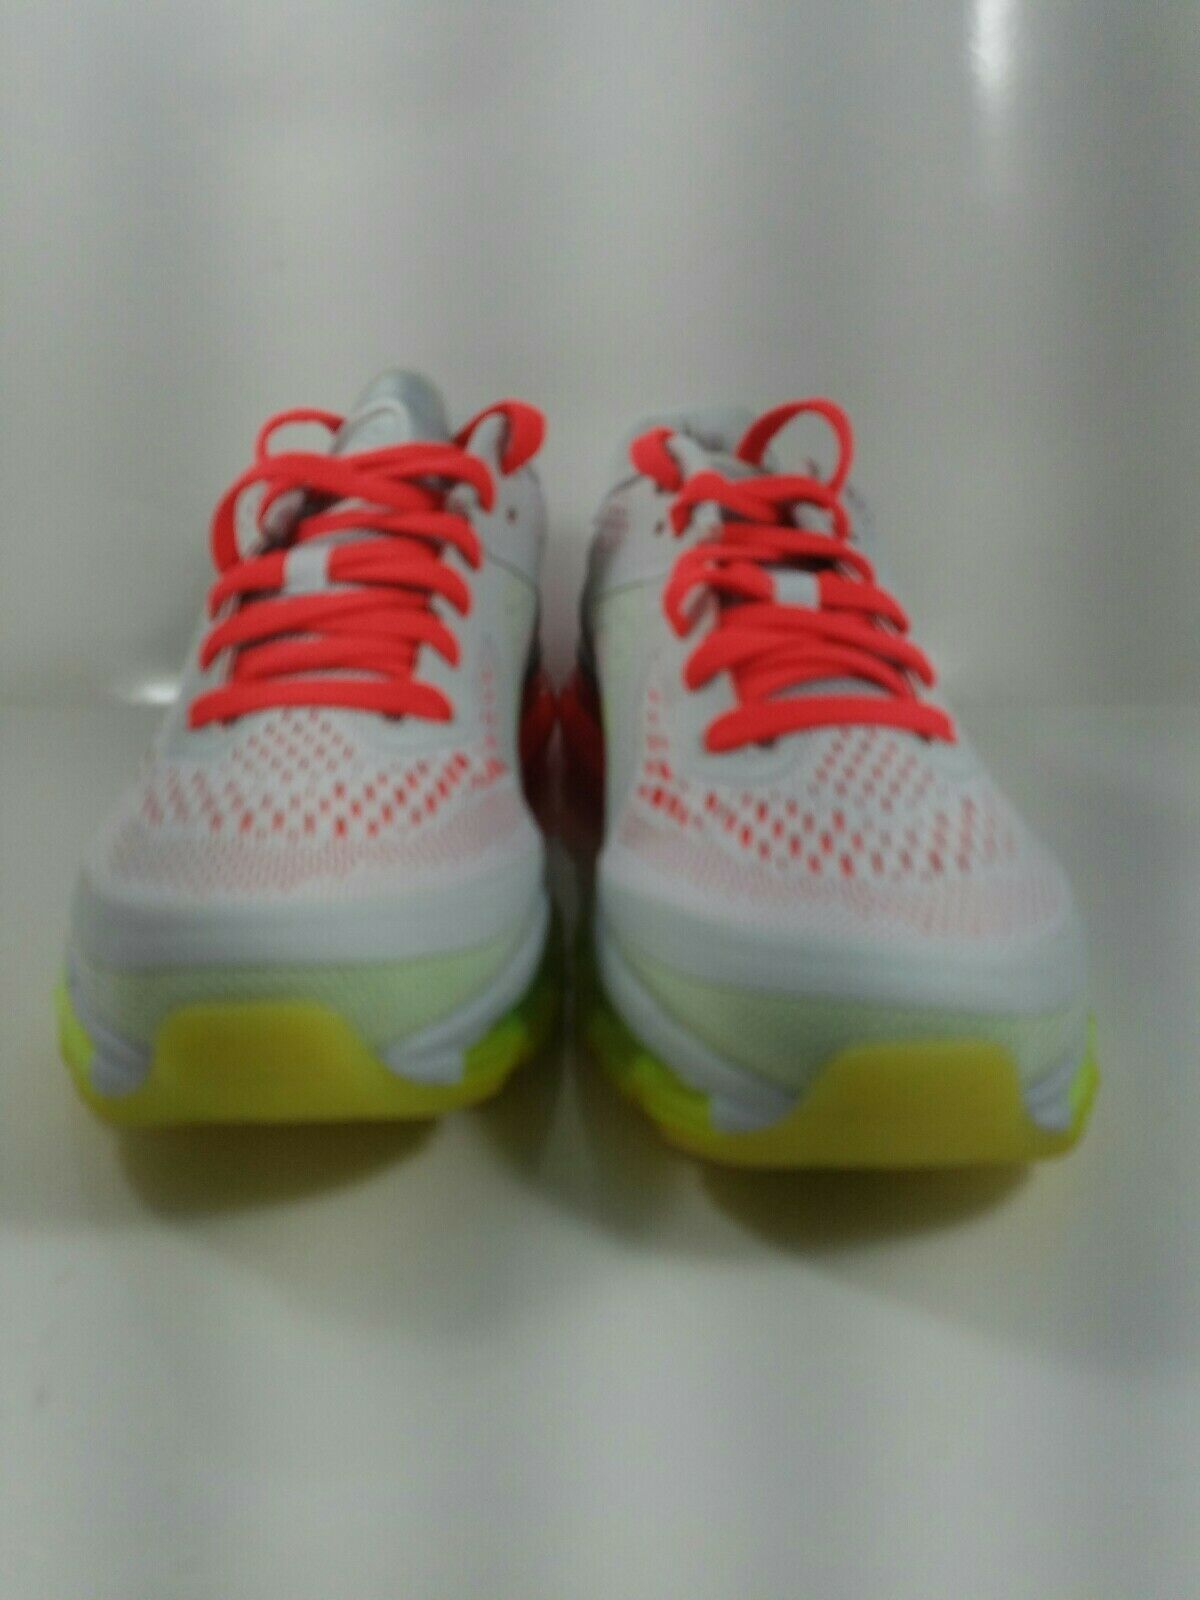 NEW NIKE AIR MAX 2014 (GS) RUNNING SHOES ANTHRCT/RFLCT  MEN 5.5Y  WM 7 US